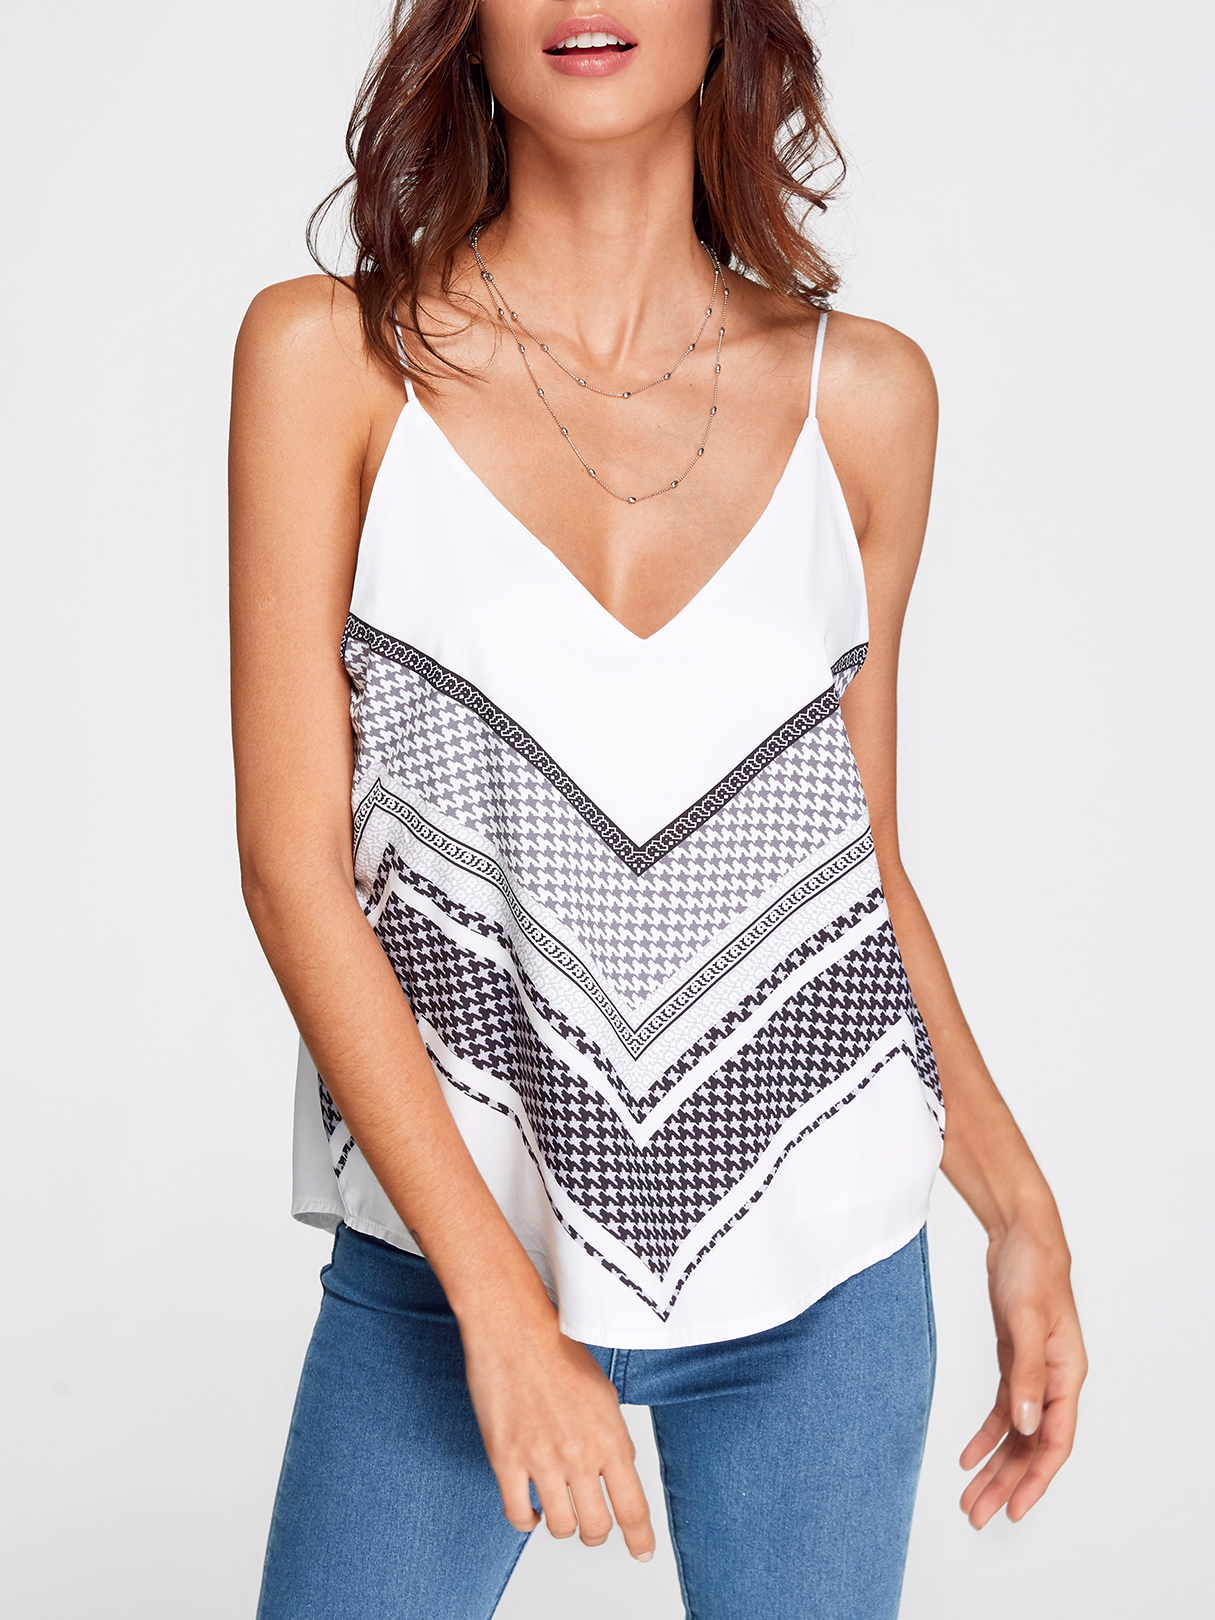 V-neck Random Stripe Print Cami Top in White plus leaf print v neckline top